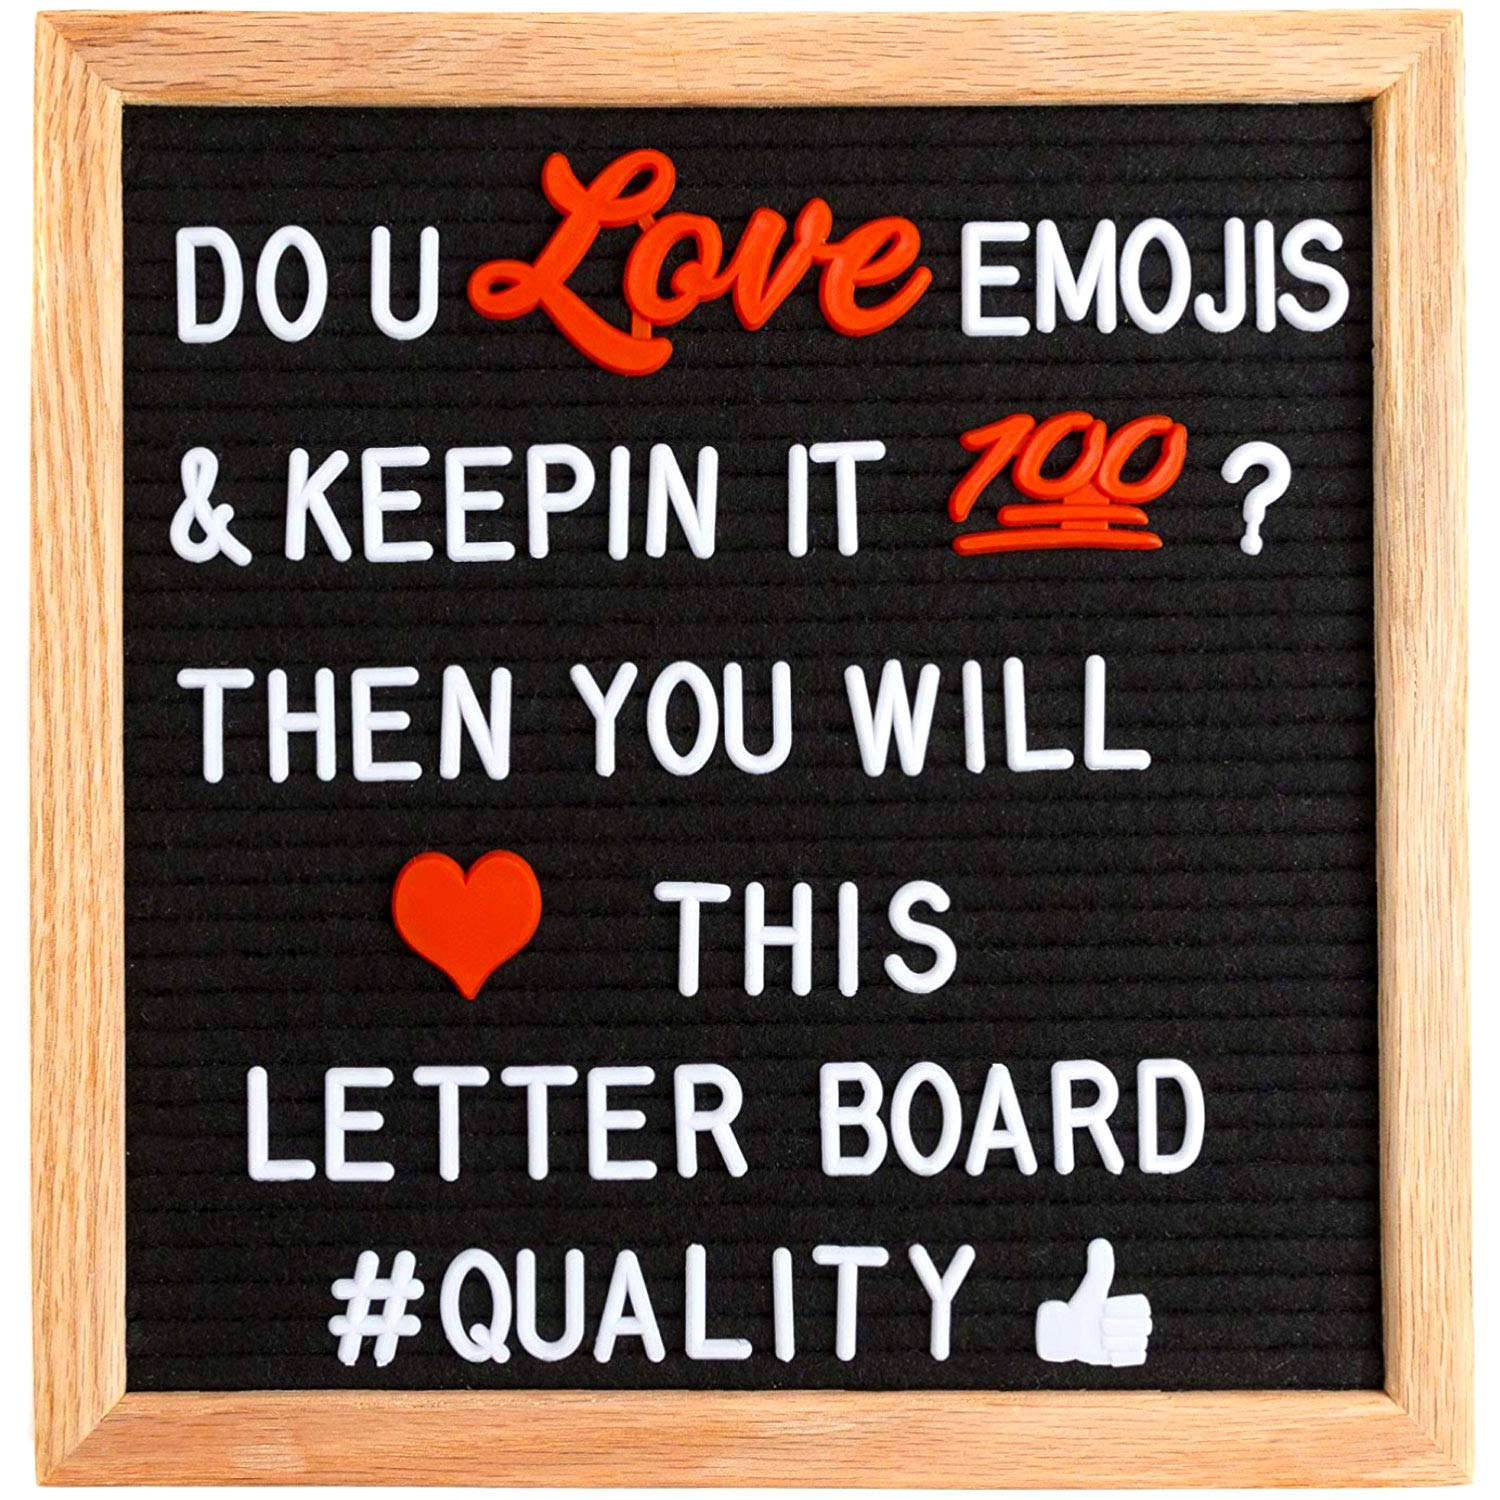 Changeable Felt Letter Board Black Message Board on Rustic Oak Frame w//White Alphabet /& Number Sets on Small Framed Customizable Letterboard Sign by Wordplay Creations 10x10 inch w//Emoji Stickers